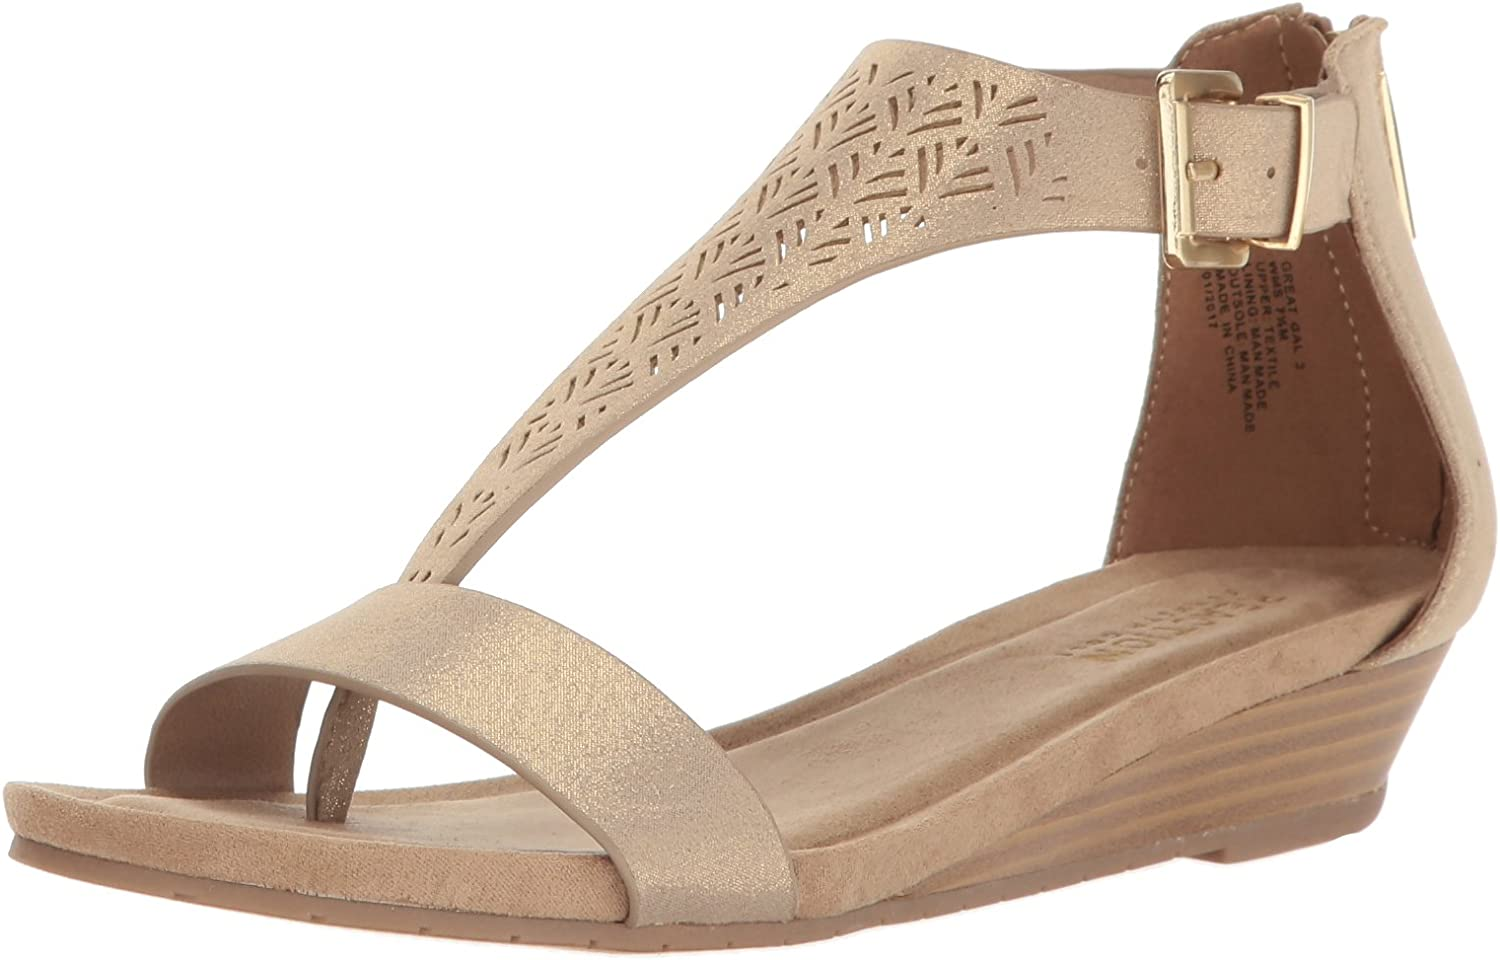 Kenneth Cole REACTION Women's Great Gal 3 Fashion Sandals